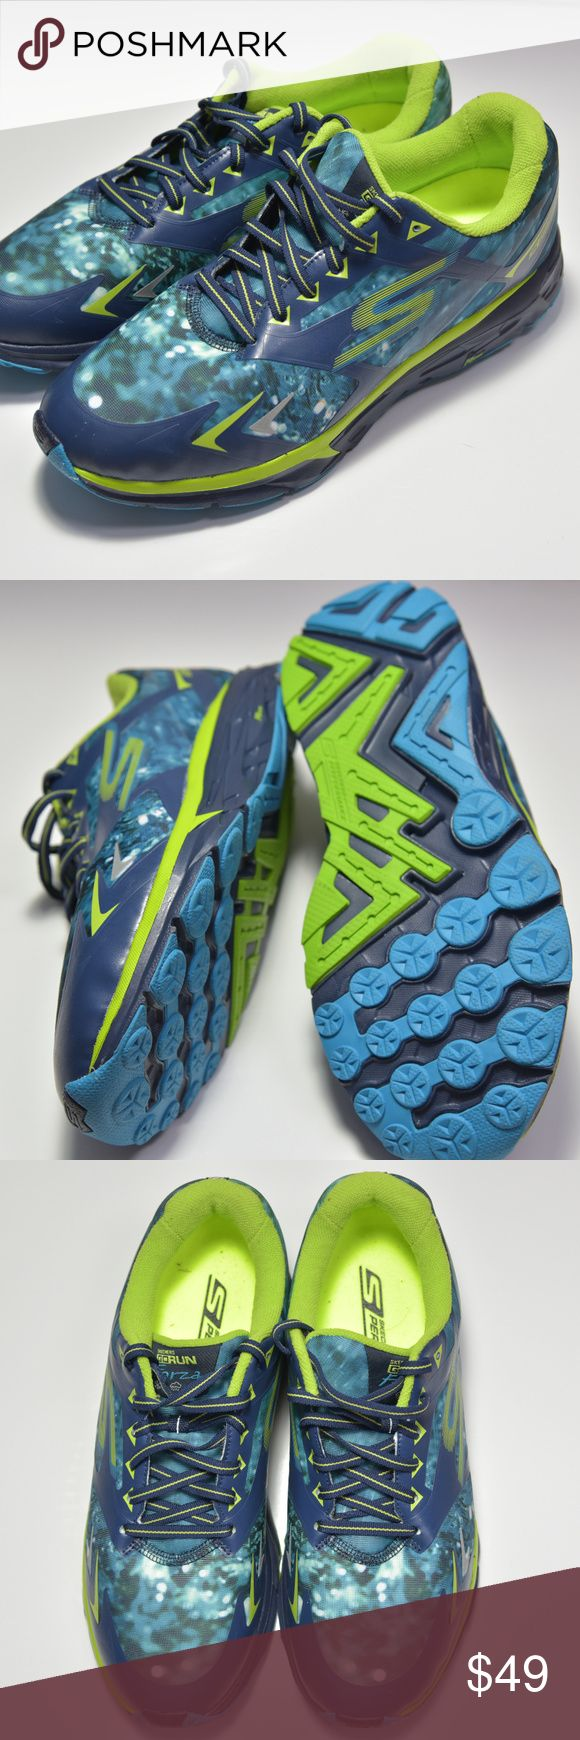 NEW! Sketchers Go Run Forza Climate Series US 10 Brand new pair of men's Skechers Go Run Forza running shoes. Men's US size 10. Navy and lime. Seamless, minimal upper, provides comfort and breathability. See photo for details. **Please be sure of size before purchase. No return shipping paid because of size error. New without box!** Skechers Shoes Athletic Shoes